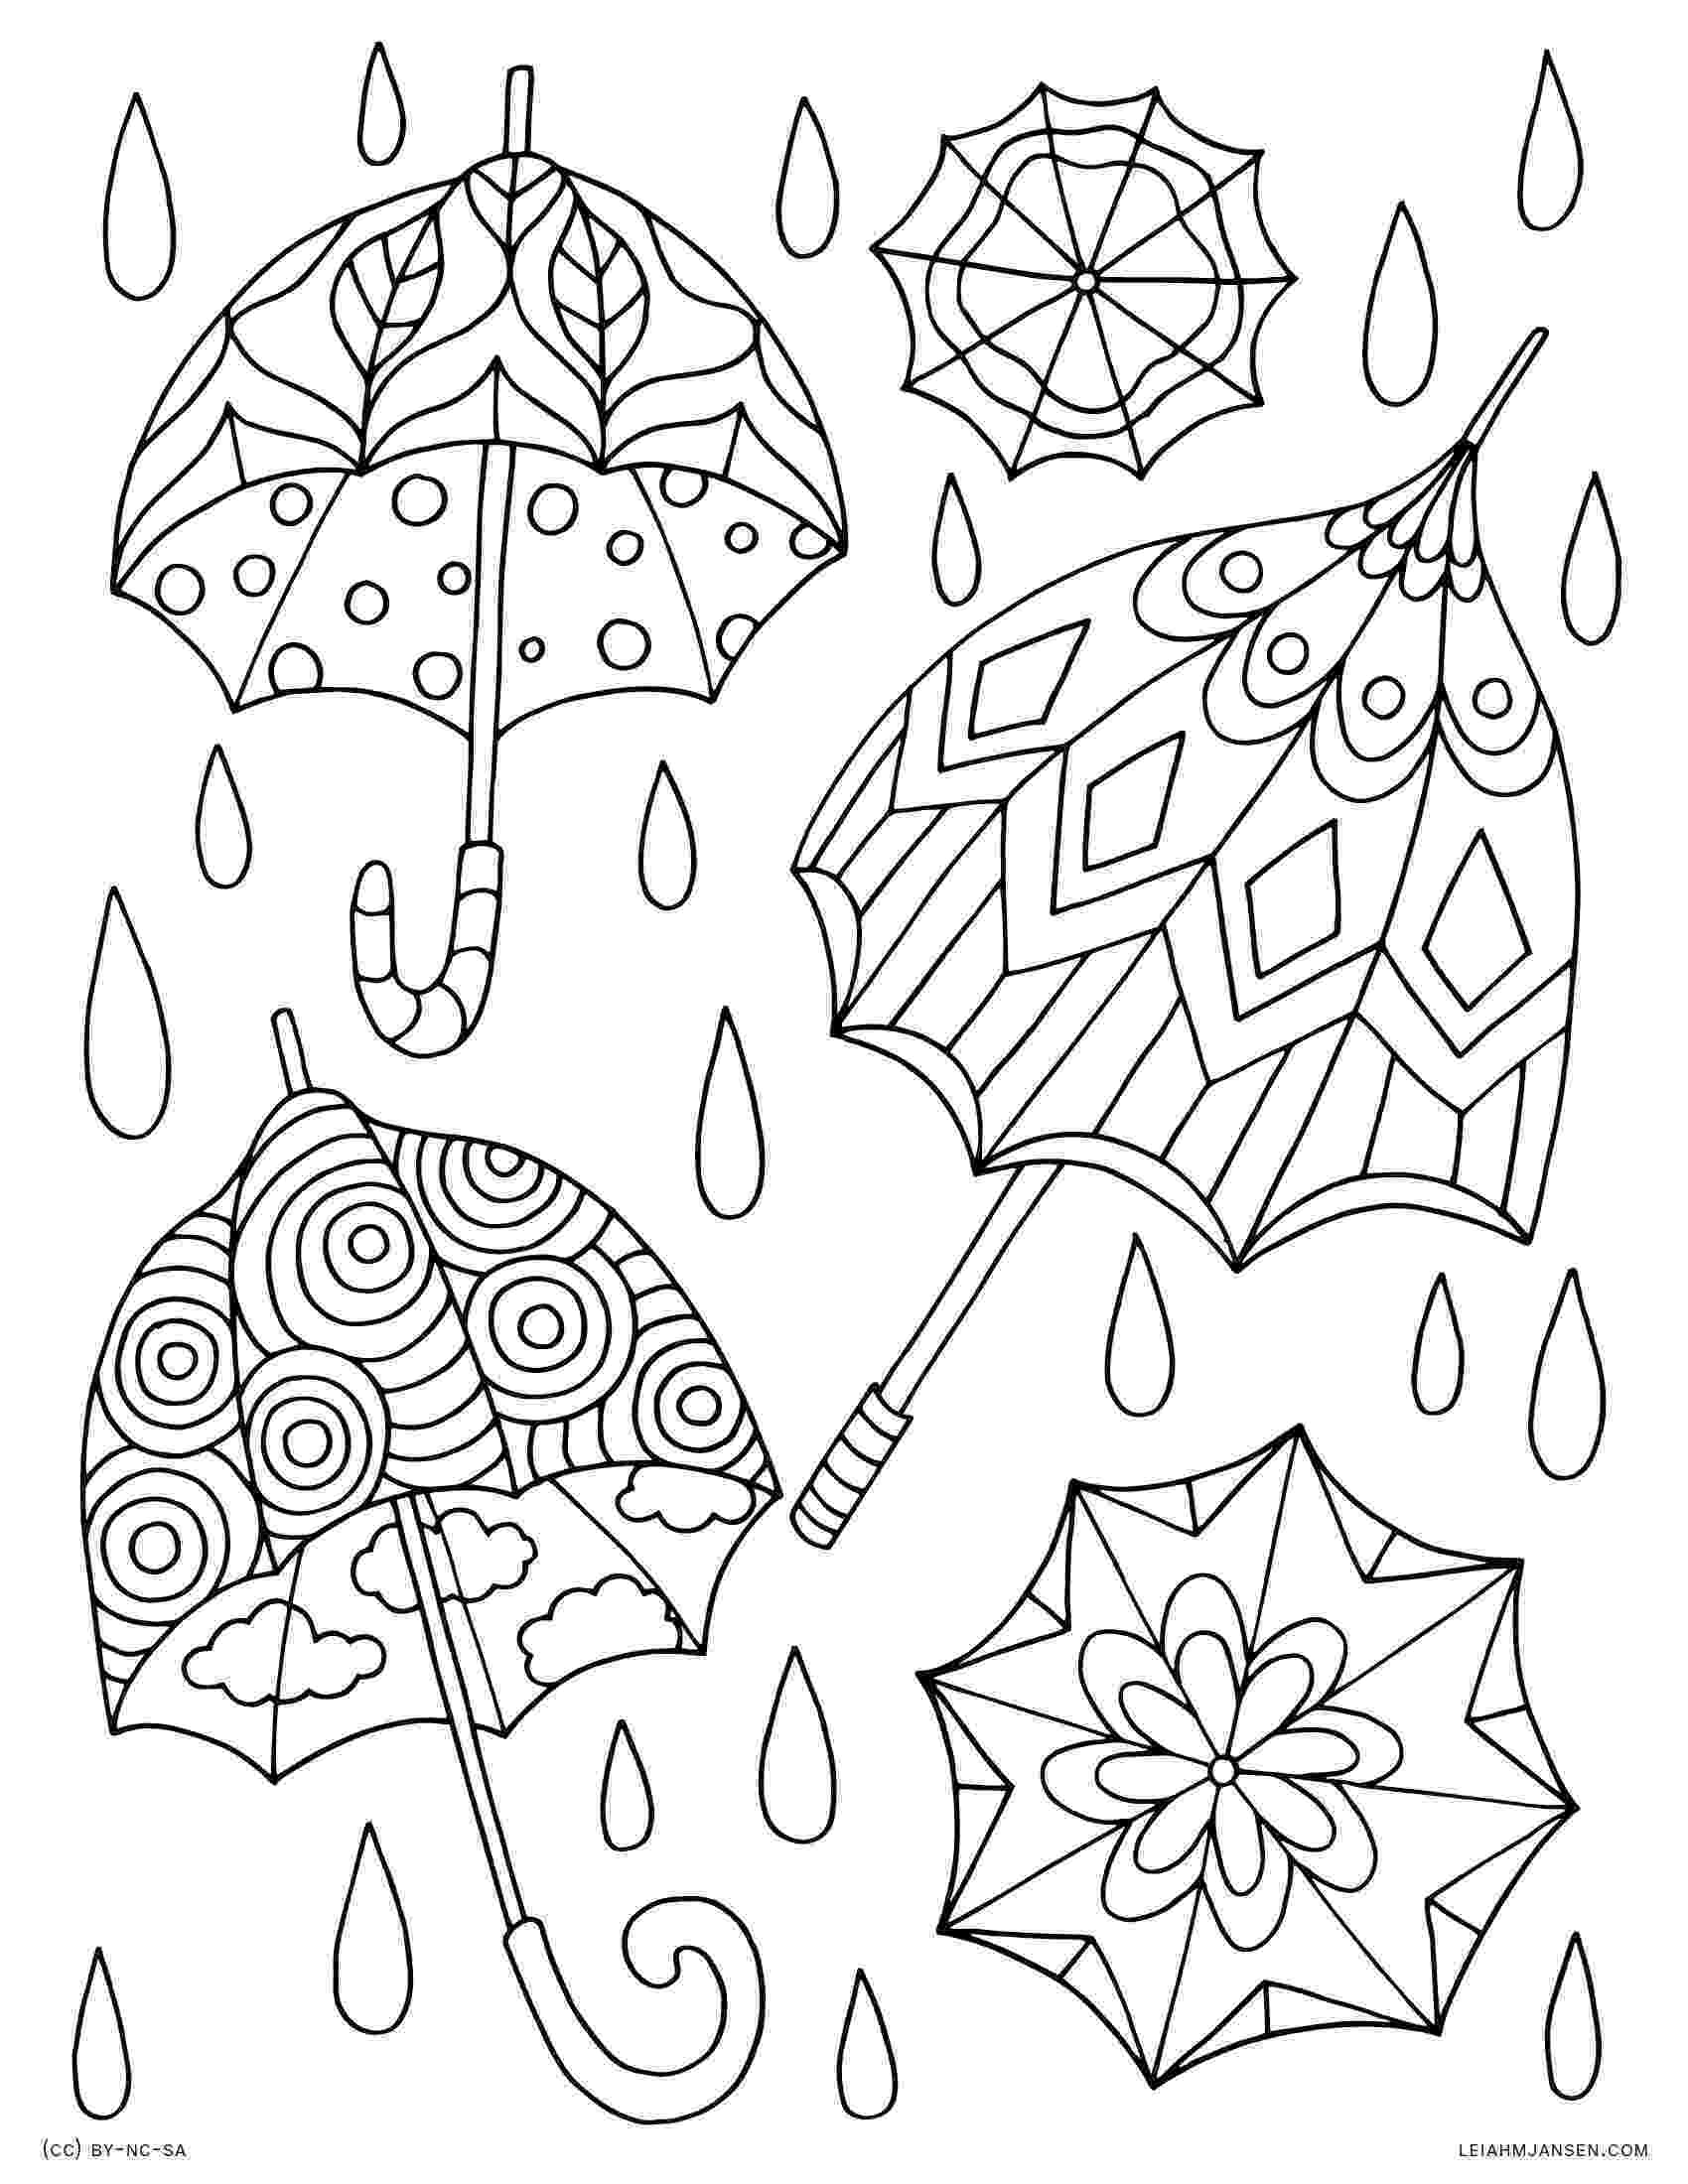 printable summer coloring pages for adults get this summer coloring pages to print out for adults coloring pages printable adults for summer